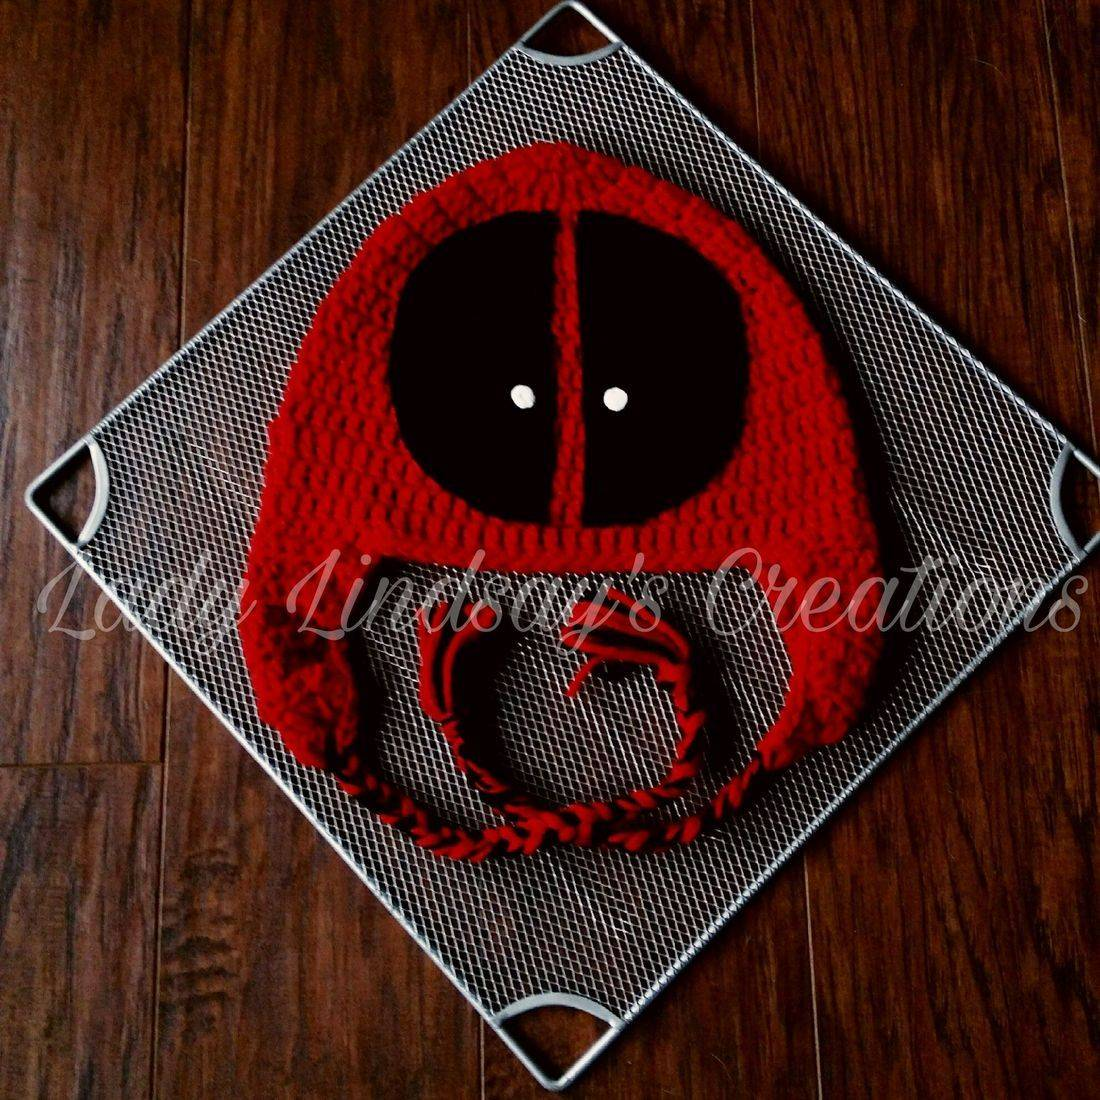 Deadpool, Mercenary, Marvel, Comicbook, beanie, hat, crochet, kawaii, anime, Etsy, handmade, nerd, geek, otaku